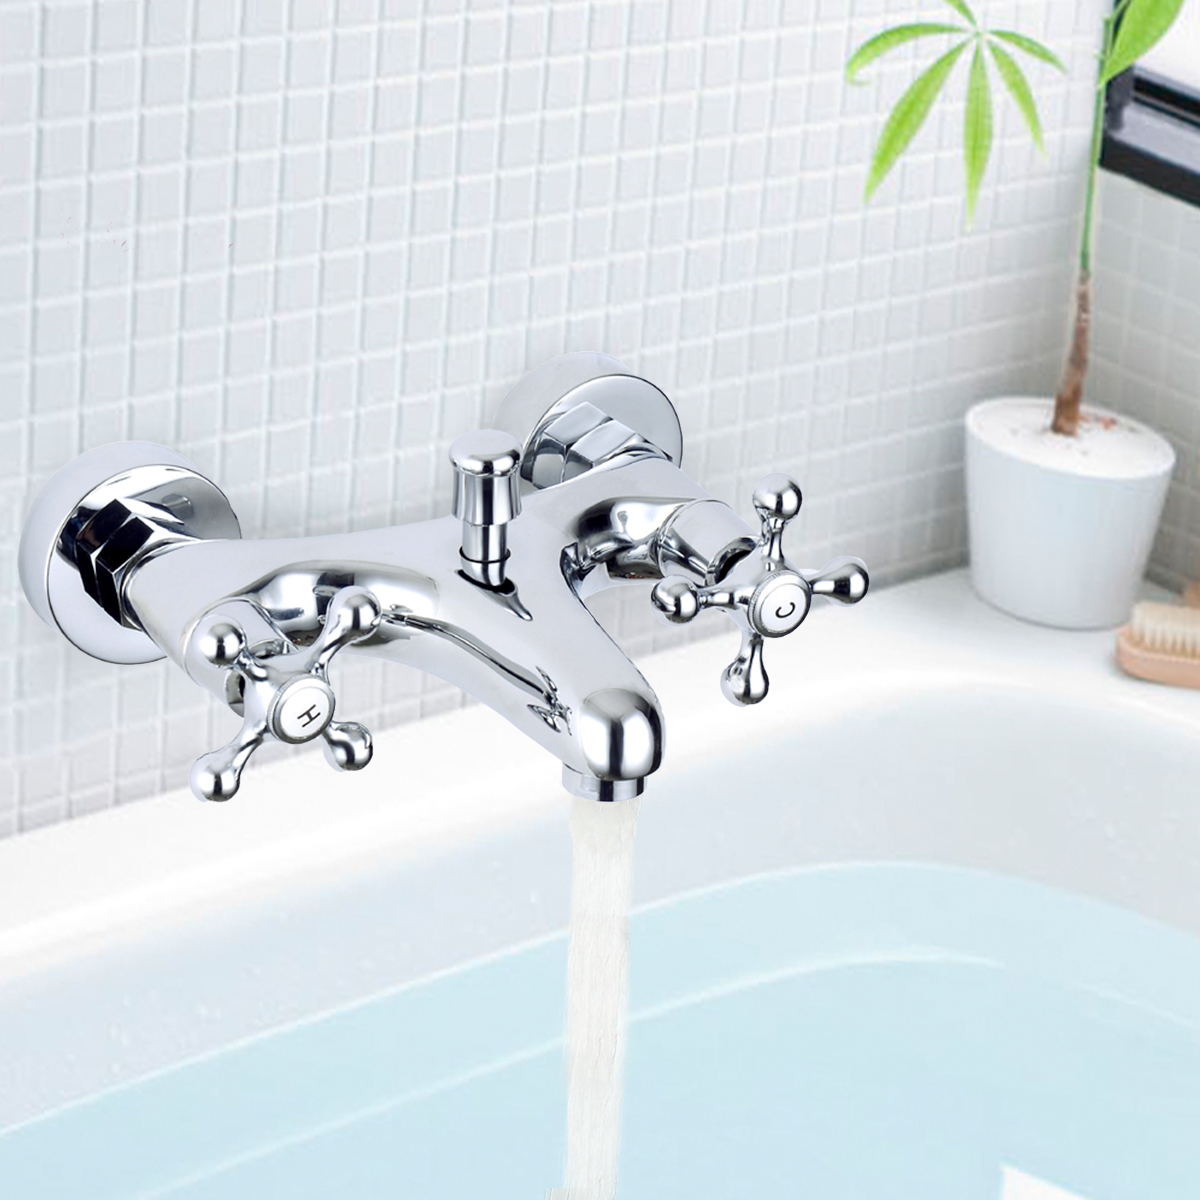 Brass Chrome Wall Mounted Bathroom Faucet Value Shower Faucets Double Handle Bath Mixer Tap European Antique Style Cold/Hot wall mounted stain black bathtub faucet double handle antique brass mixer tap bath